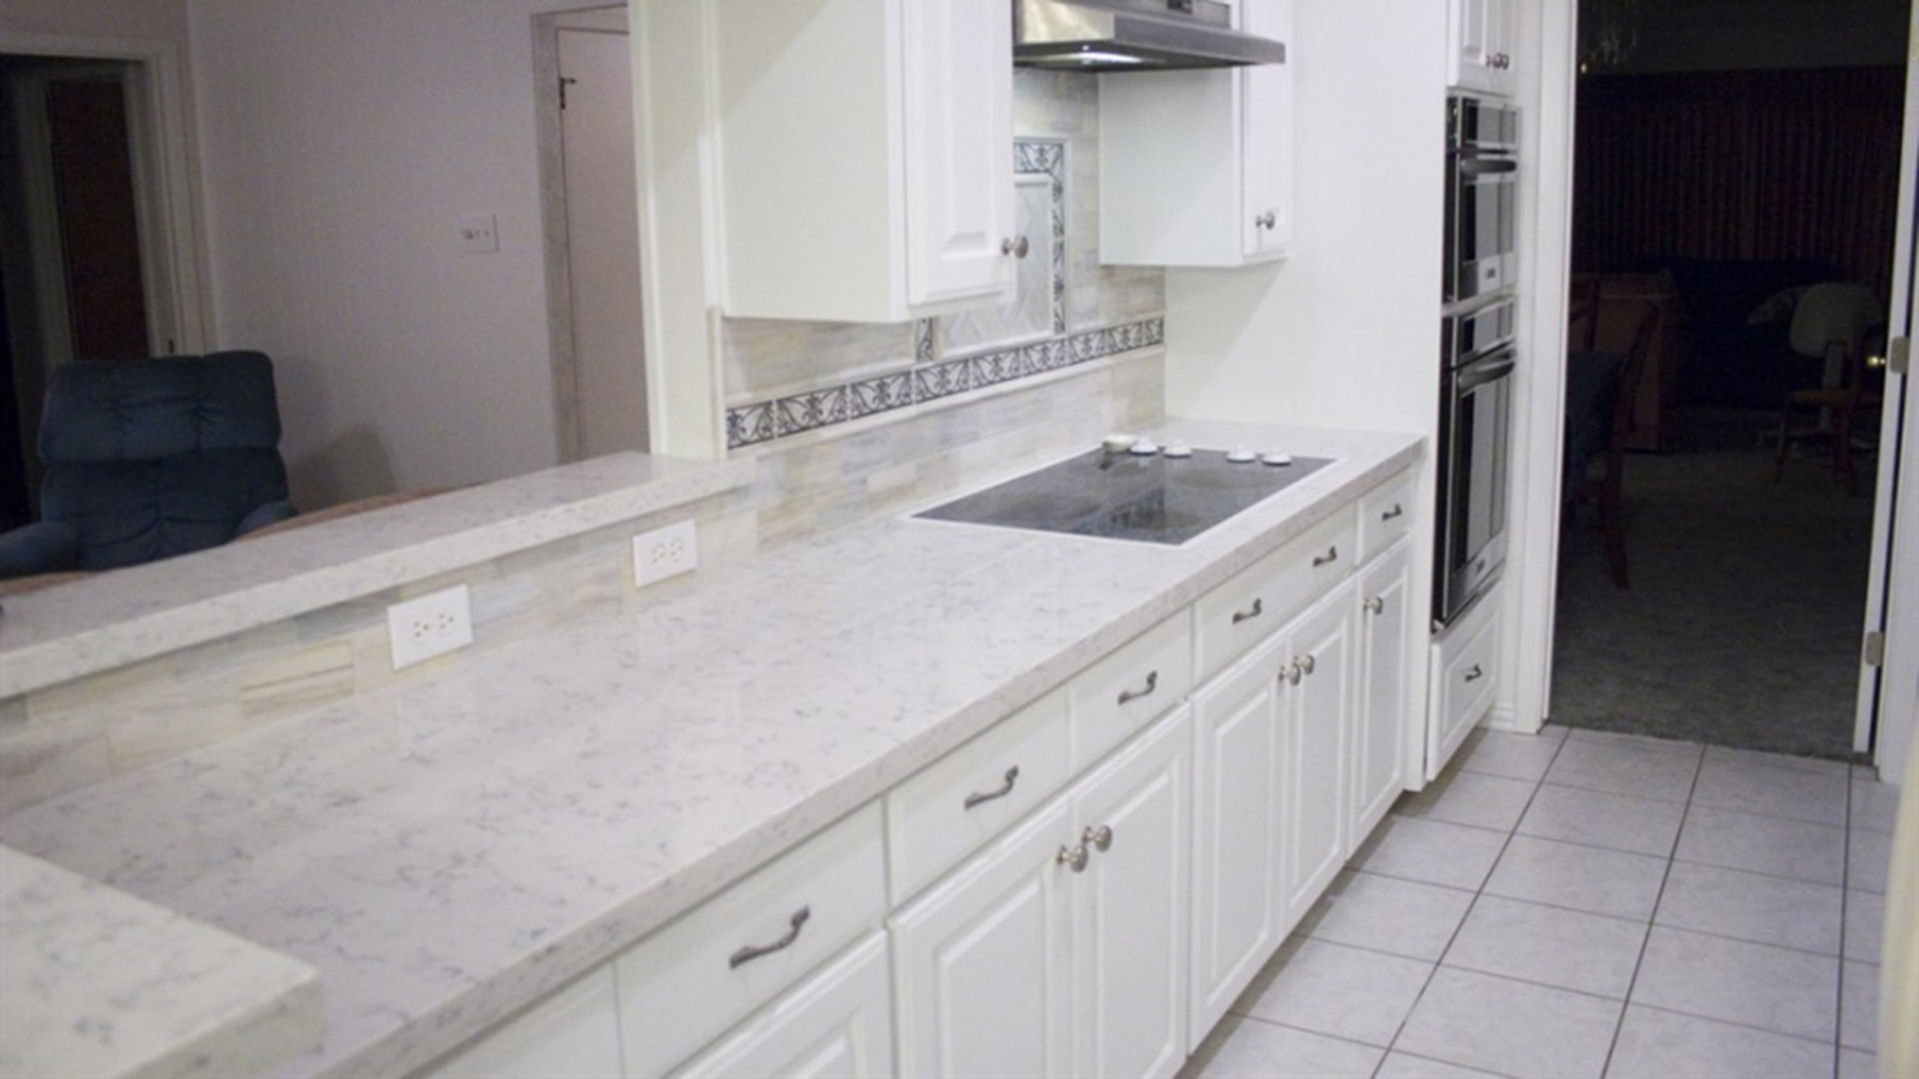 How Much Does It Cost To Install Kitchen Countertops?